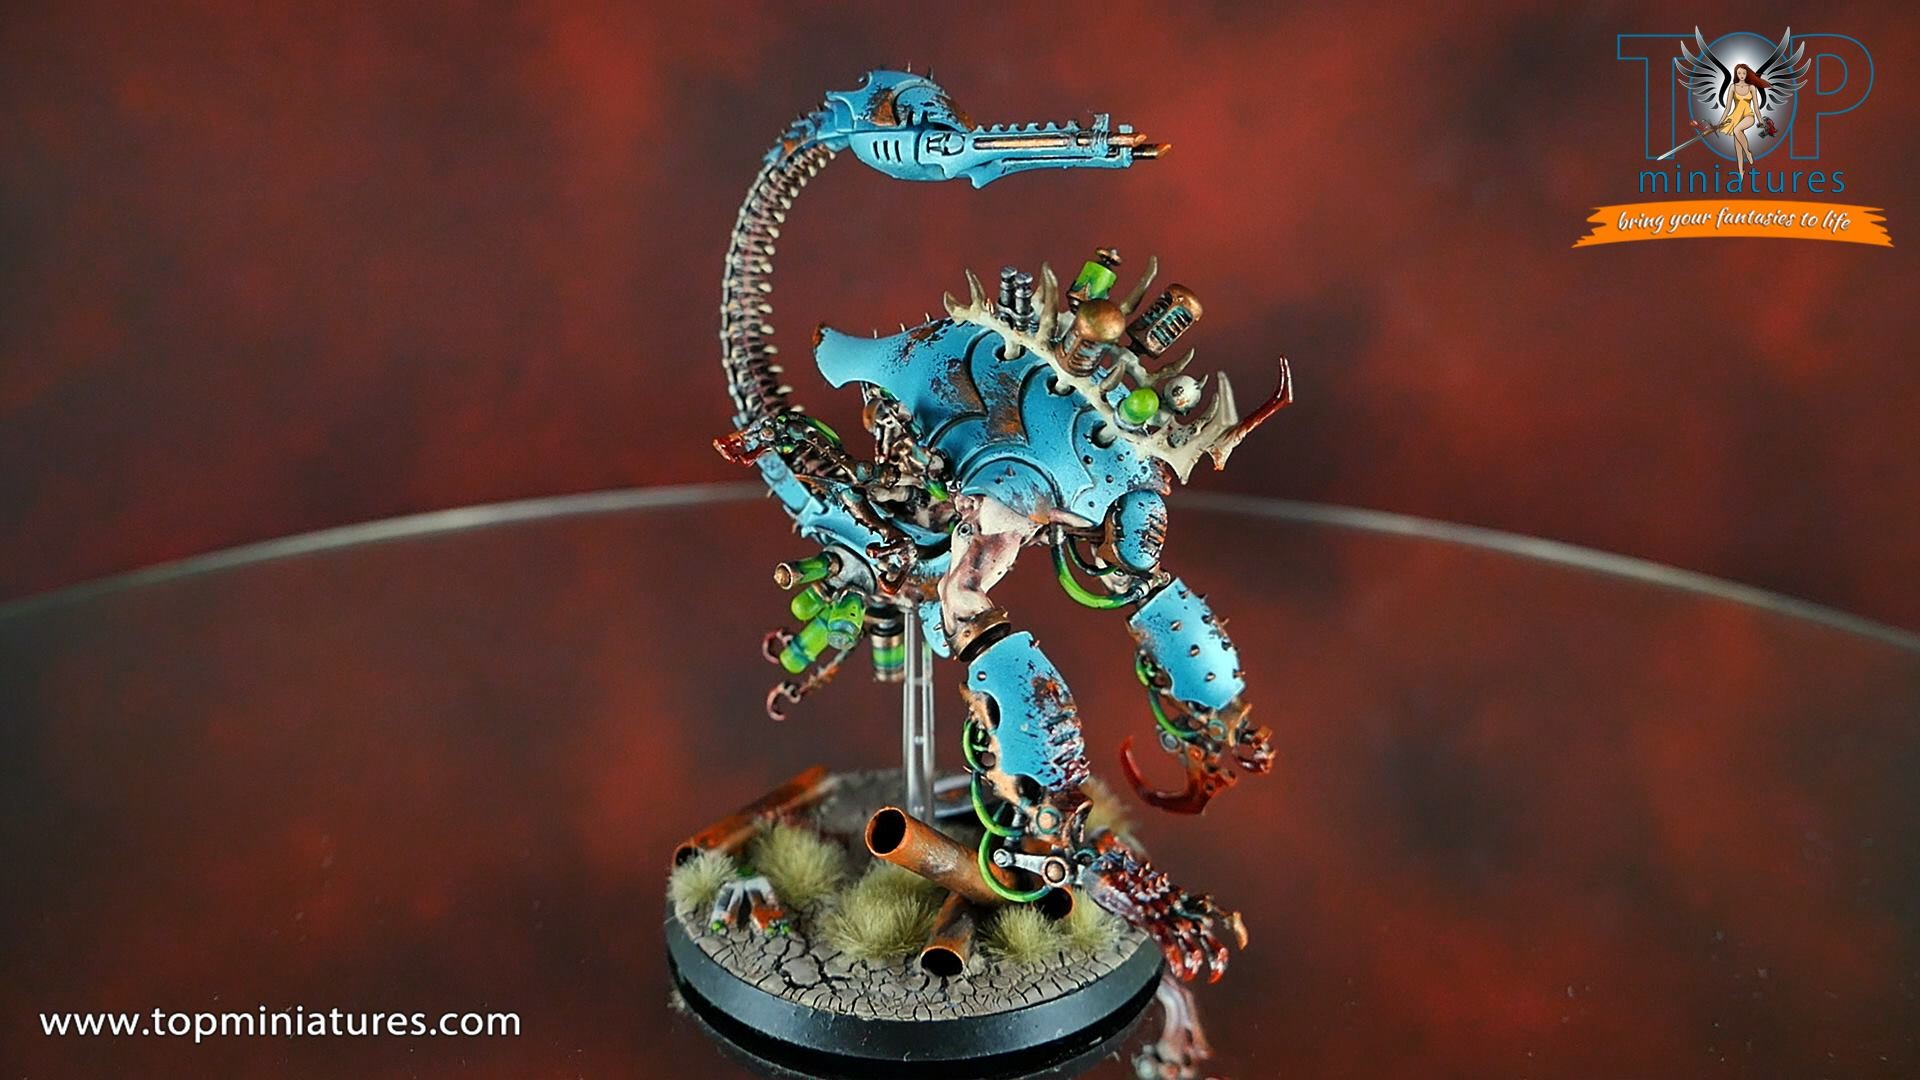 Checkout one awesome model brought to us by hobbimaniac Sorin Trandafirescu.